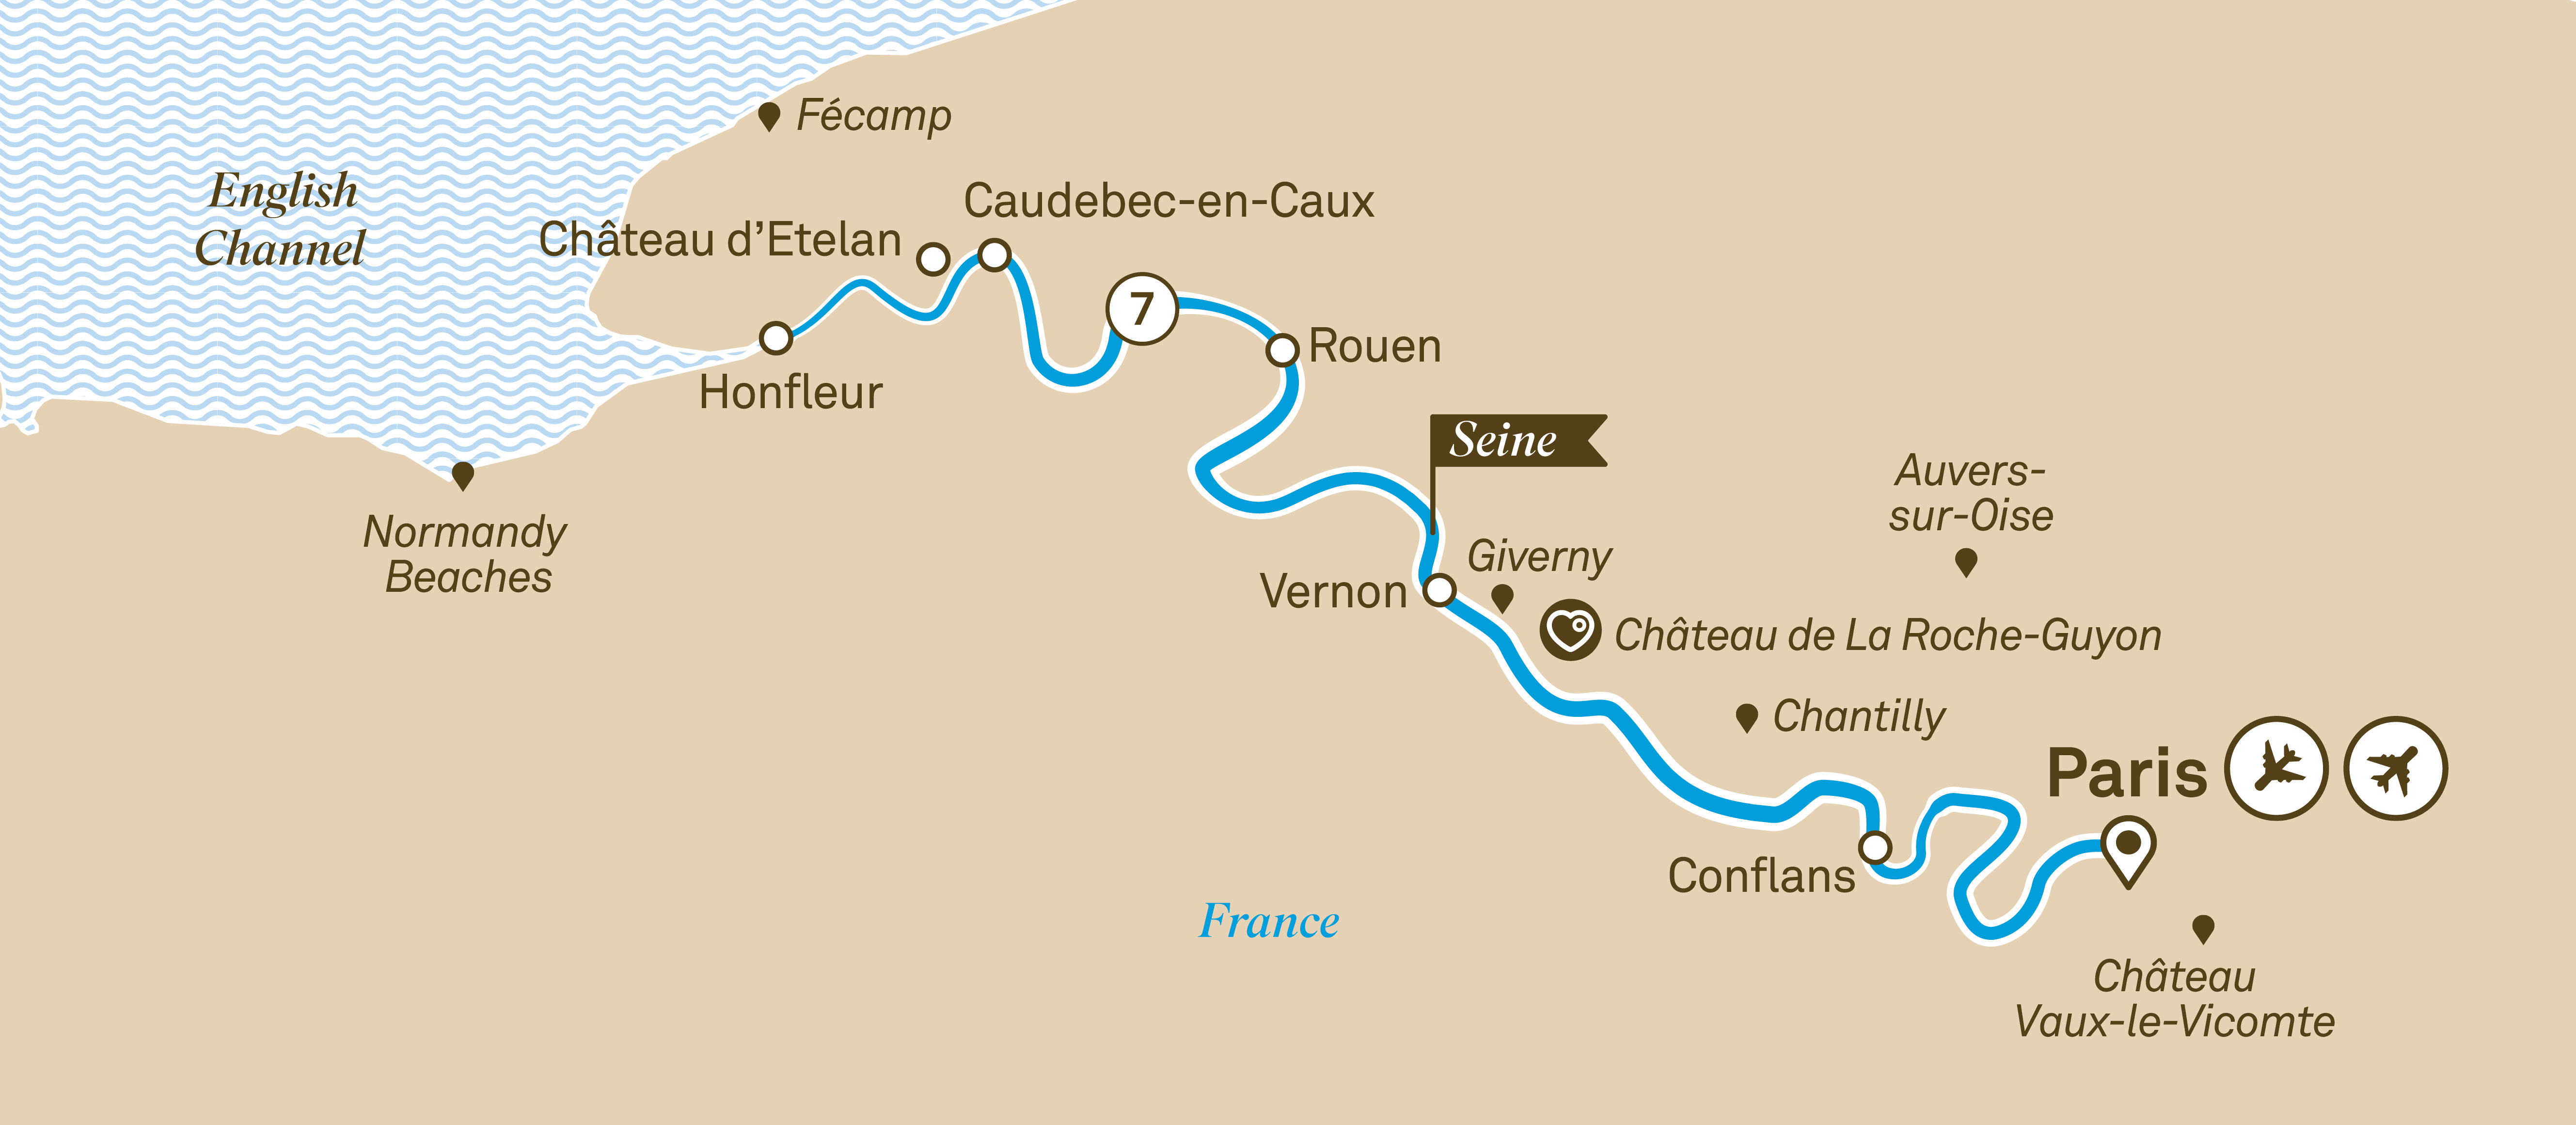 Itinerary map of Highlights of Normandy & the Seine